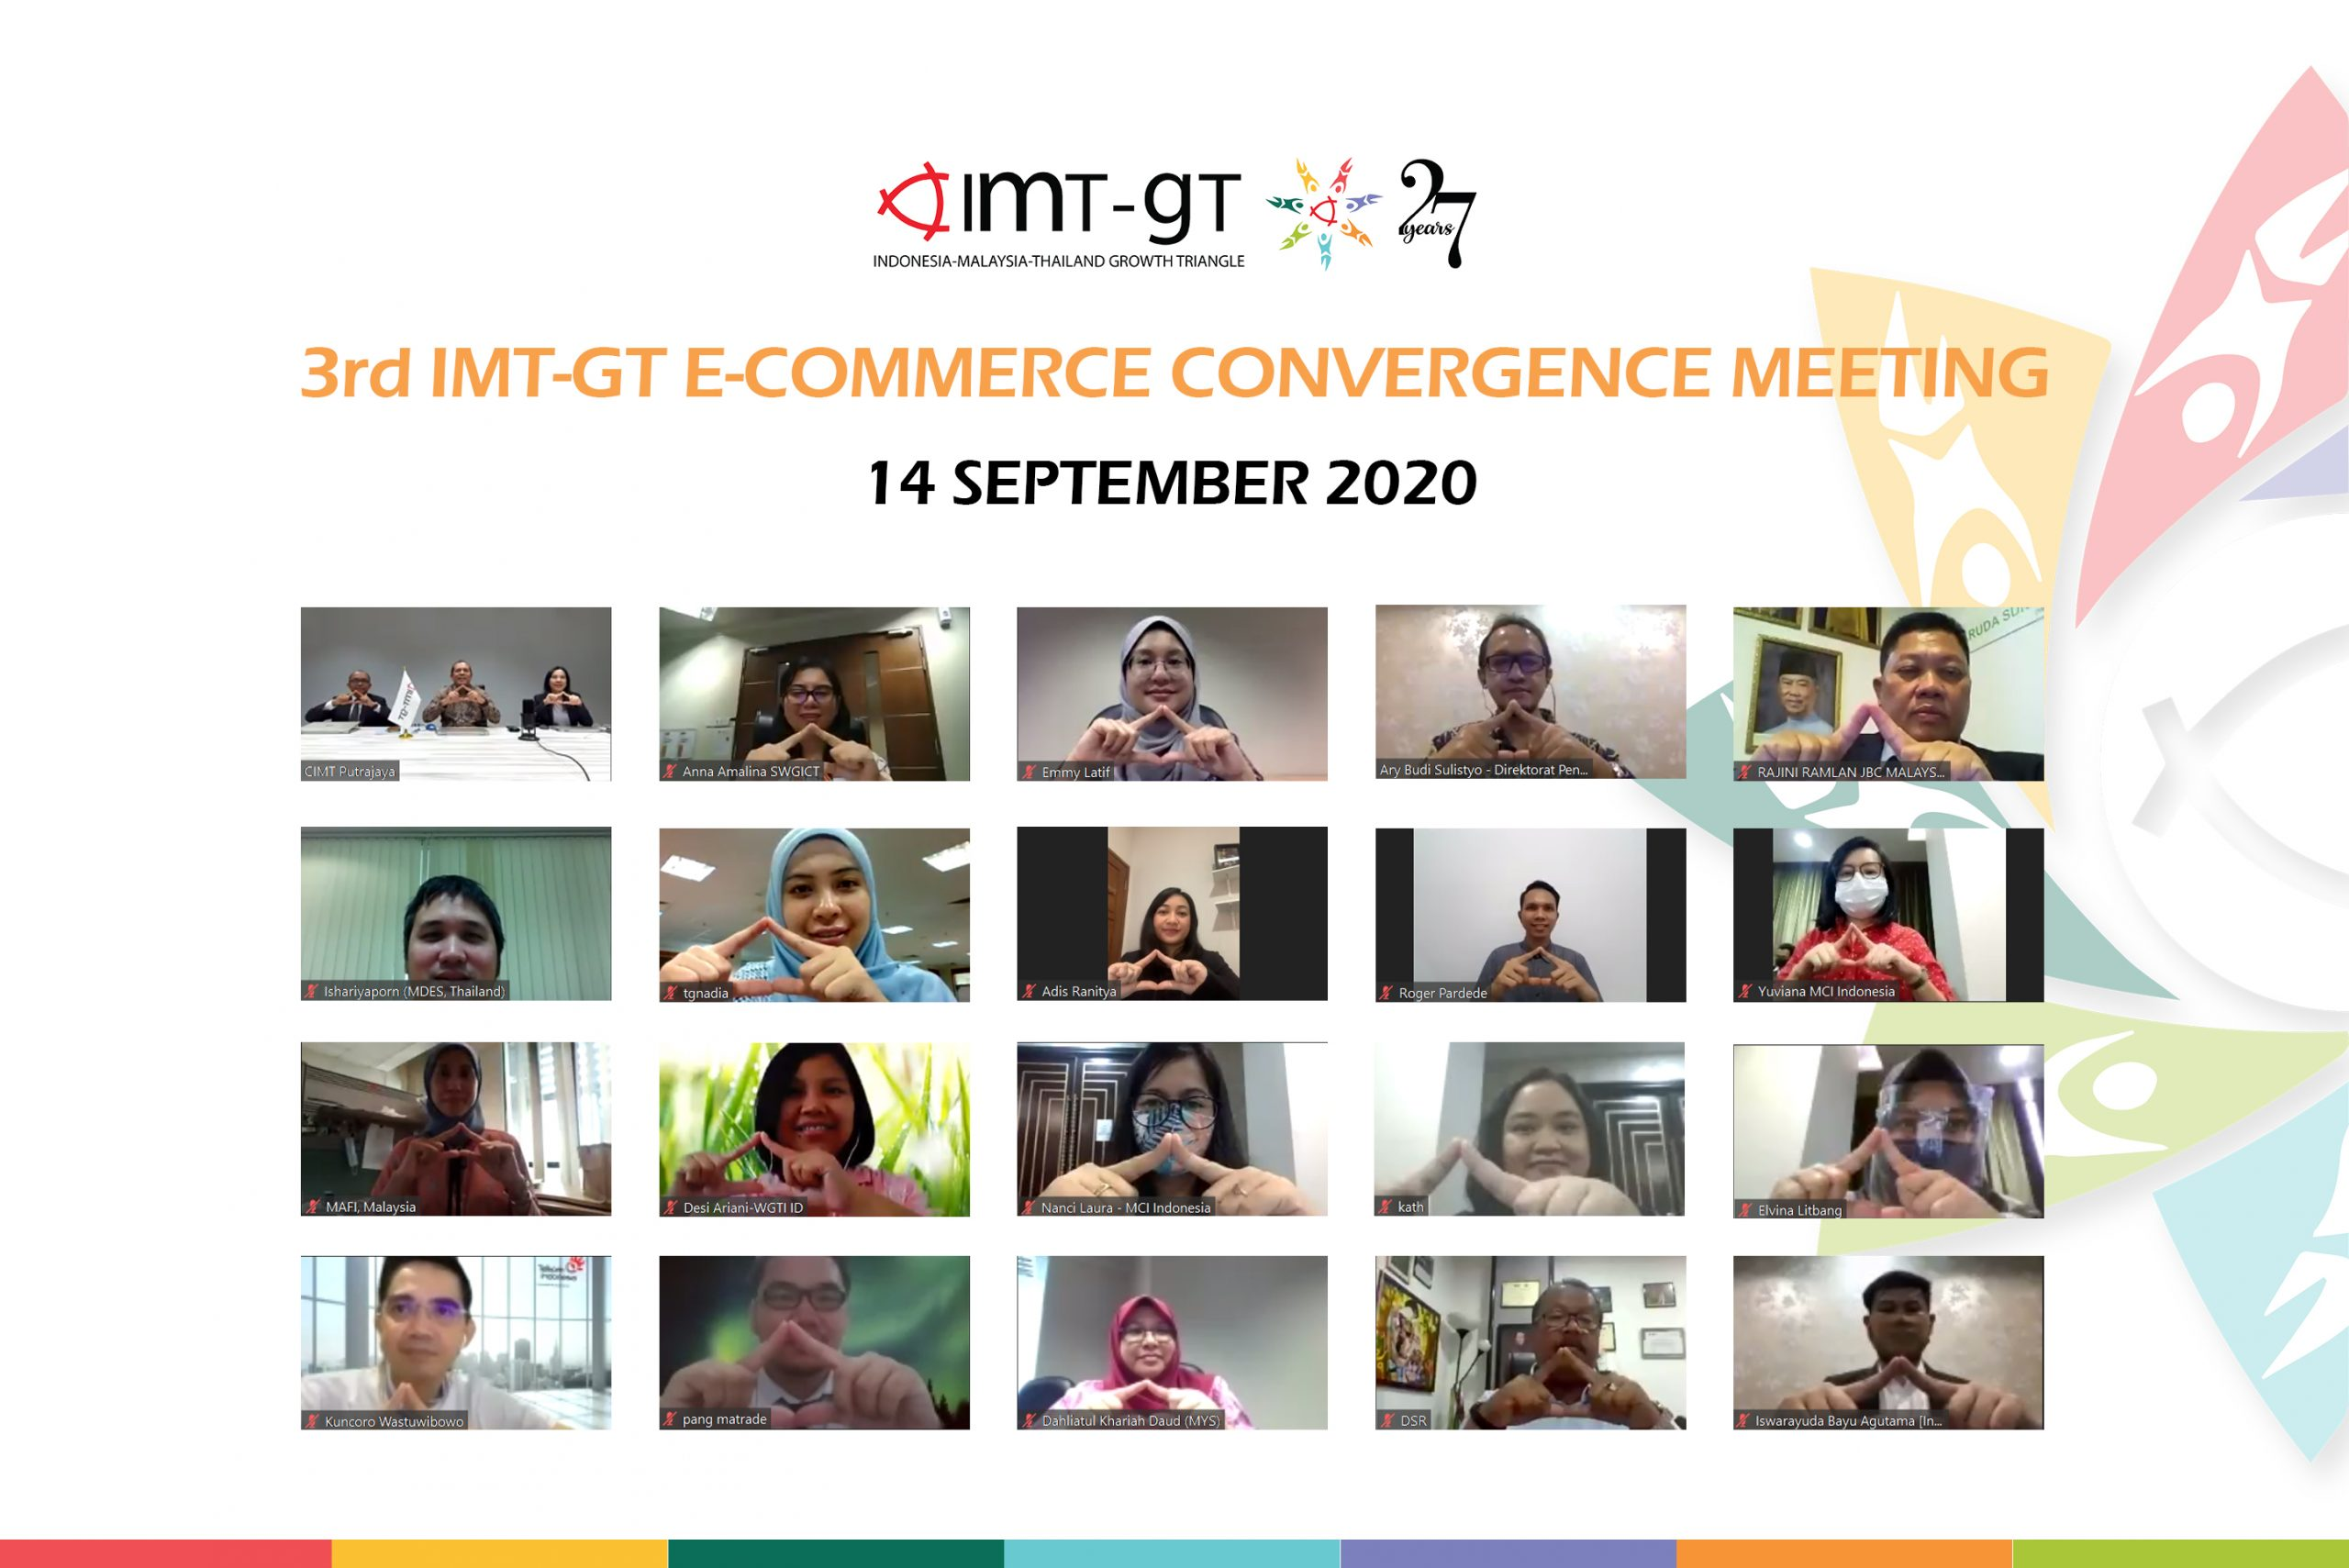 3rd IMT-GT E-Commerce Convergence Meeting